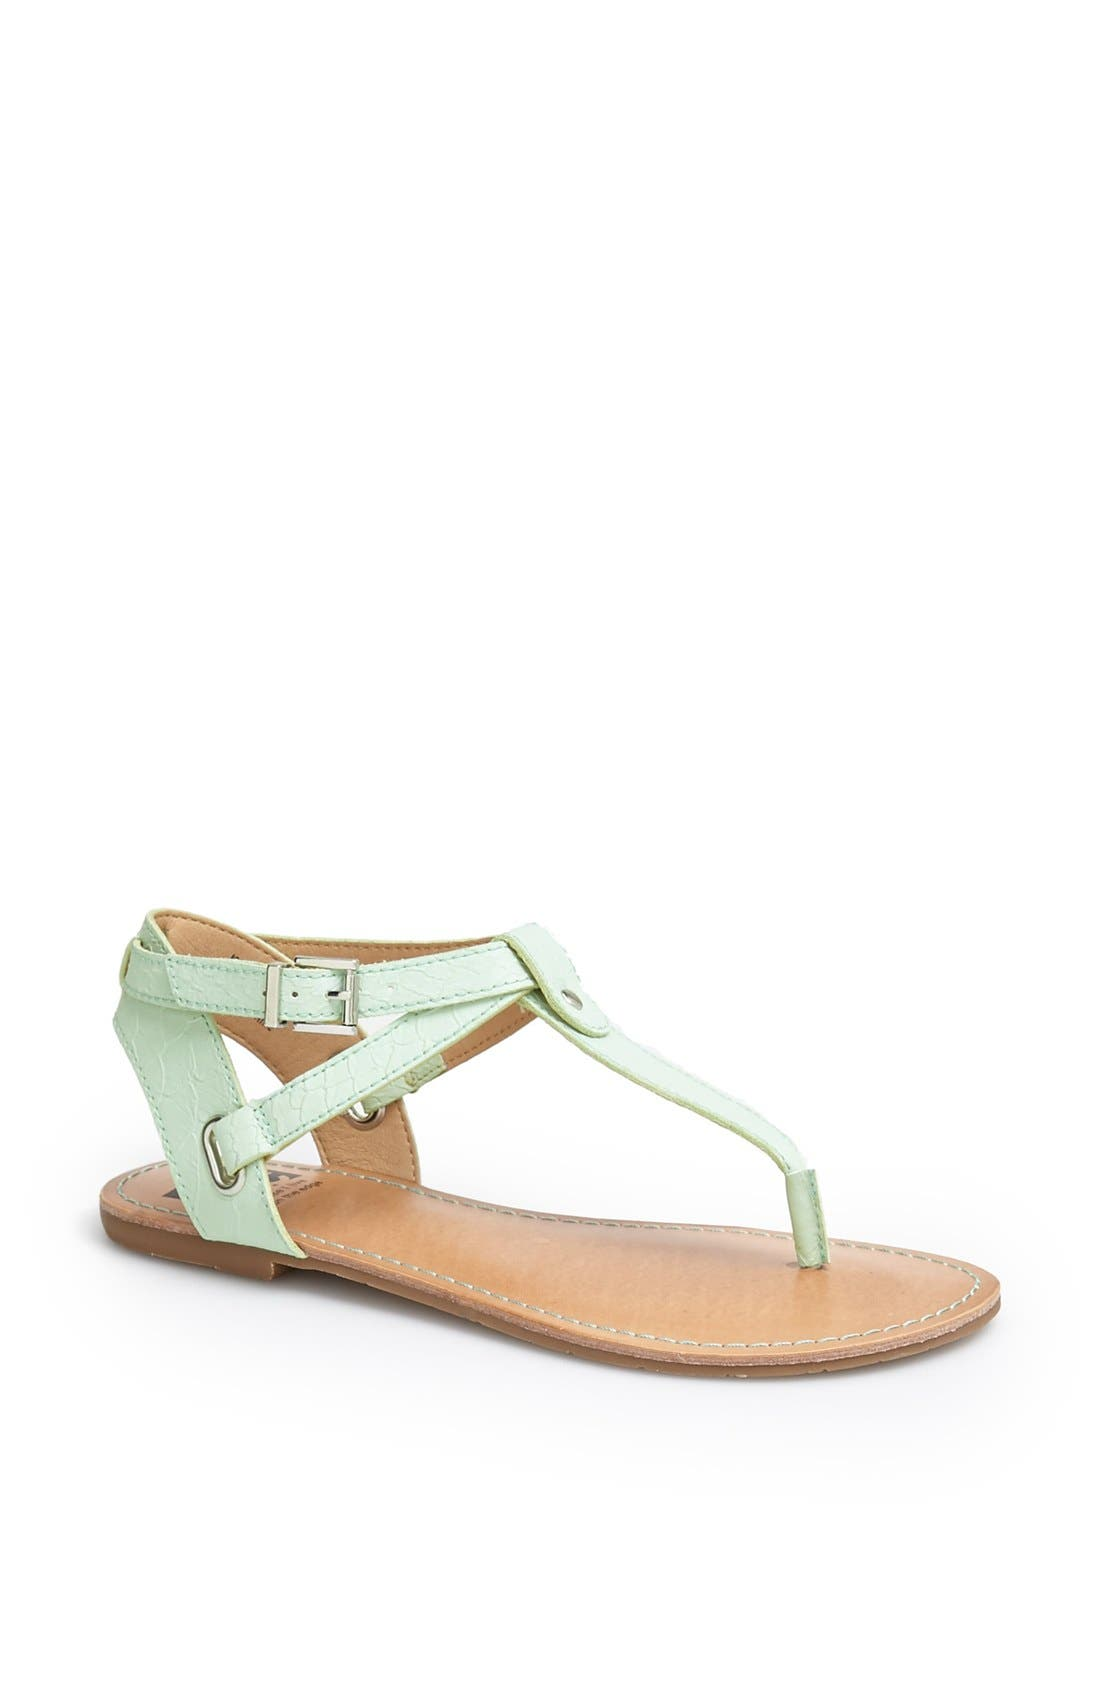 Alternate Image 1 Selected - BC Footwear 'Would If I Could' Thong Sandal